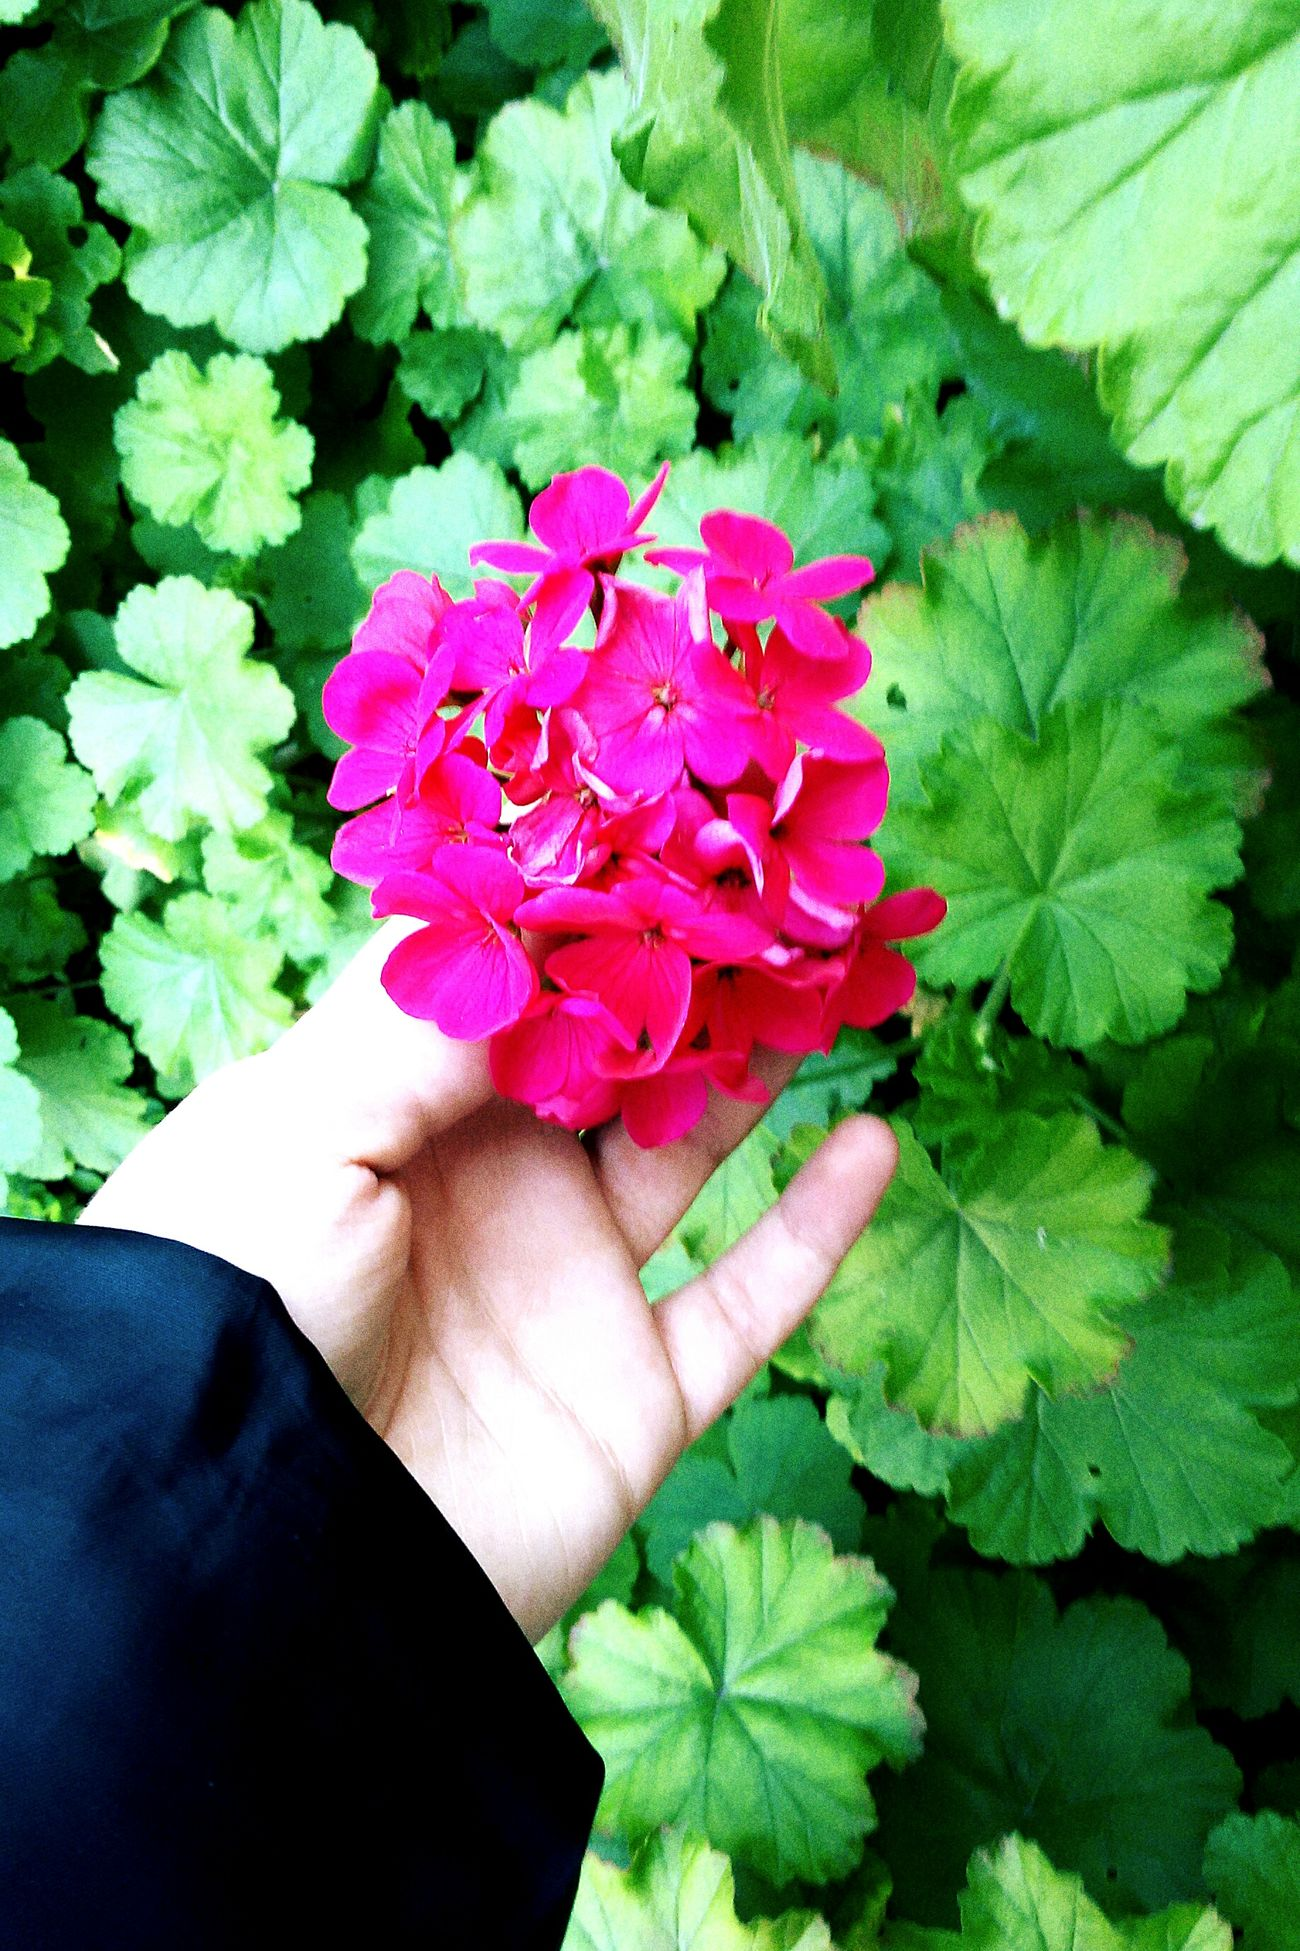 Nature_collection Nature Photography Naturelovers Flower Head Pink Color Freshness Beauty In Nature Human Hand Flower One Person Fragility Day MadebyMe ☝✌ Plant Holding Motion Freedom Tranquil Scene